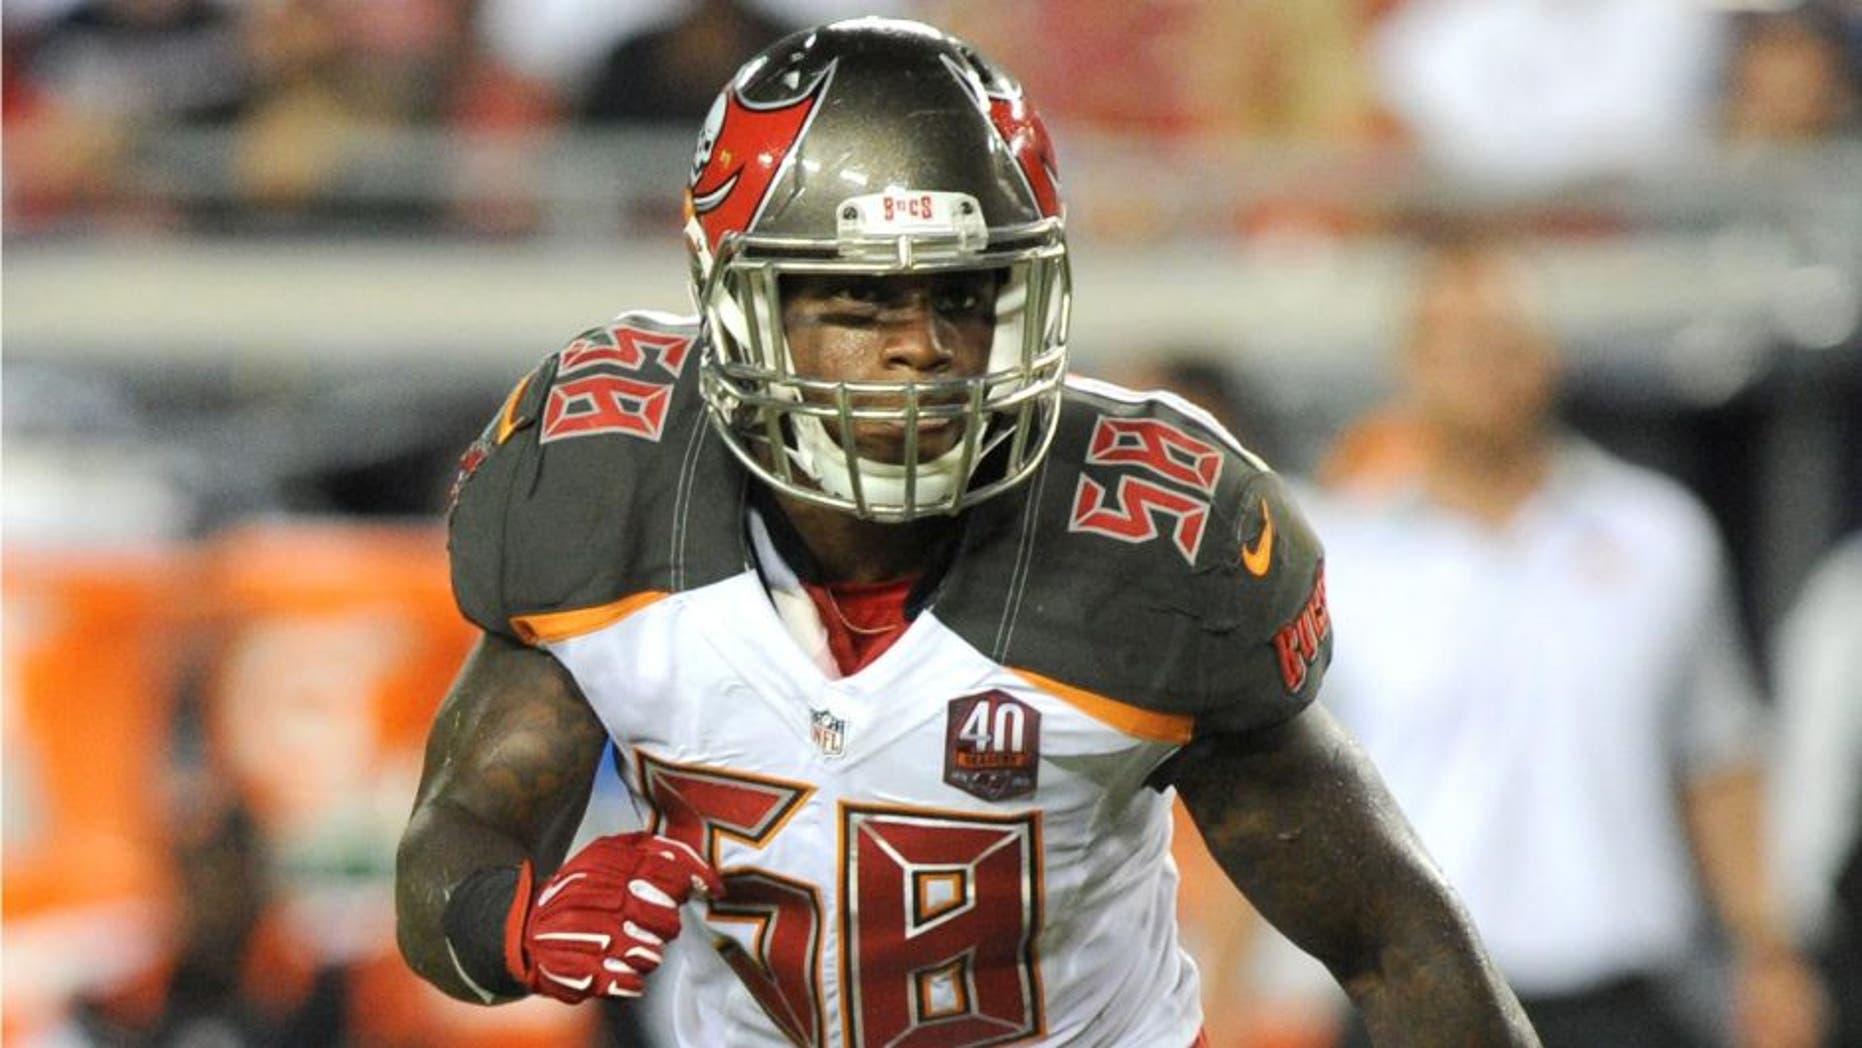 TAMPA, FL - AUGUST 24: Outside linebacker Kwon Alexander #58 of the Tampa Bay Buccaneers runs upfield during action against the Cincinnati Bengals at Raymond James Stadium in preseason action on August 24, 2015 in Tampa, Florida. (Photo by Cliff McBride/Getty Images)